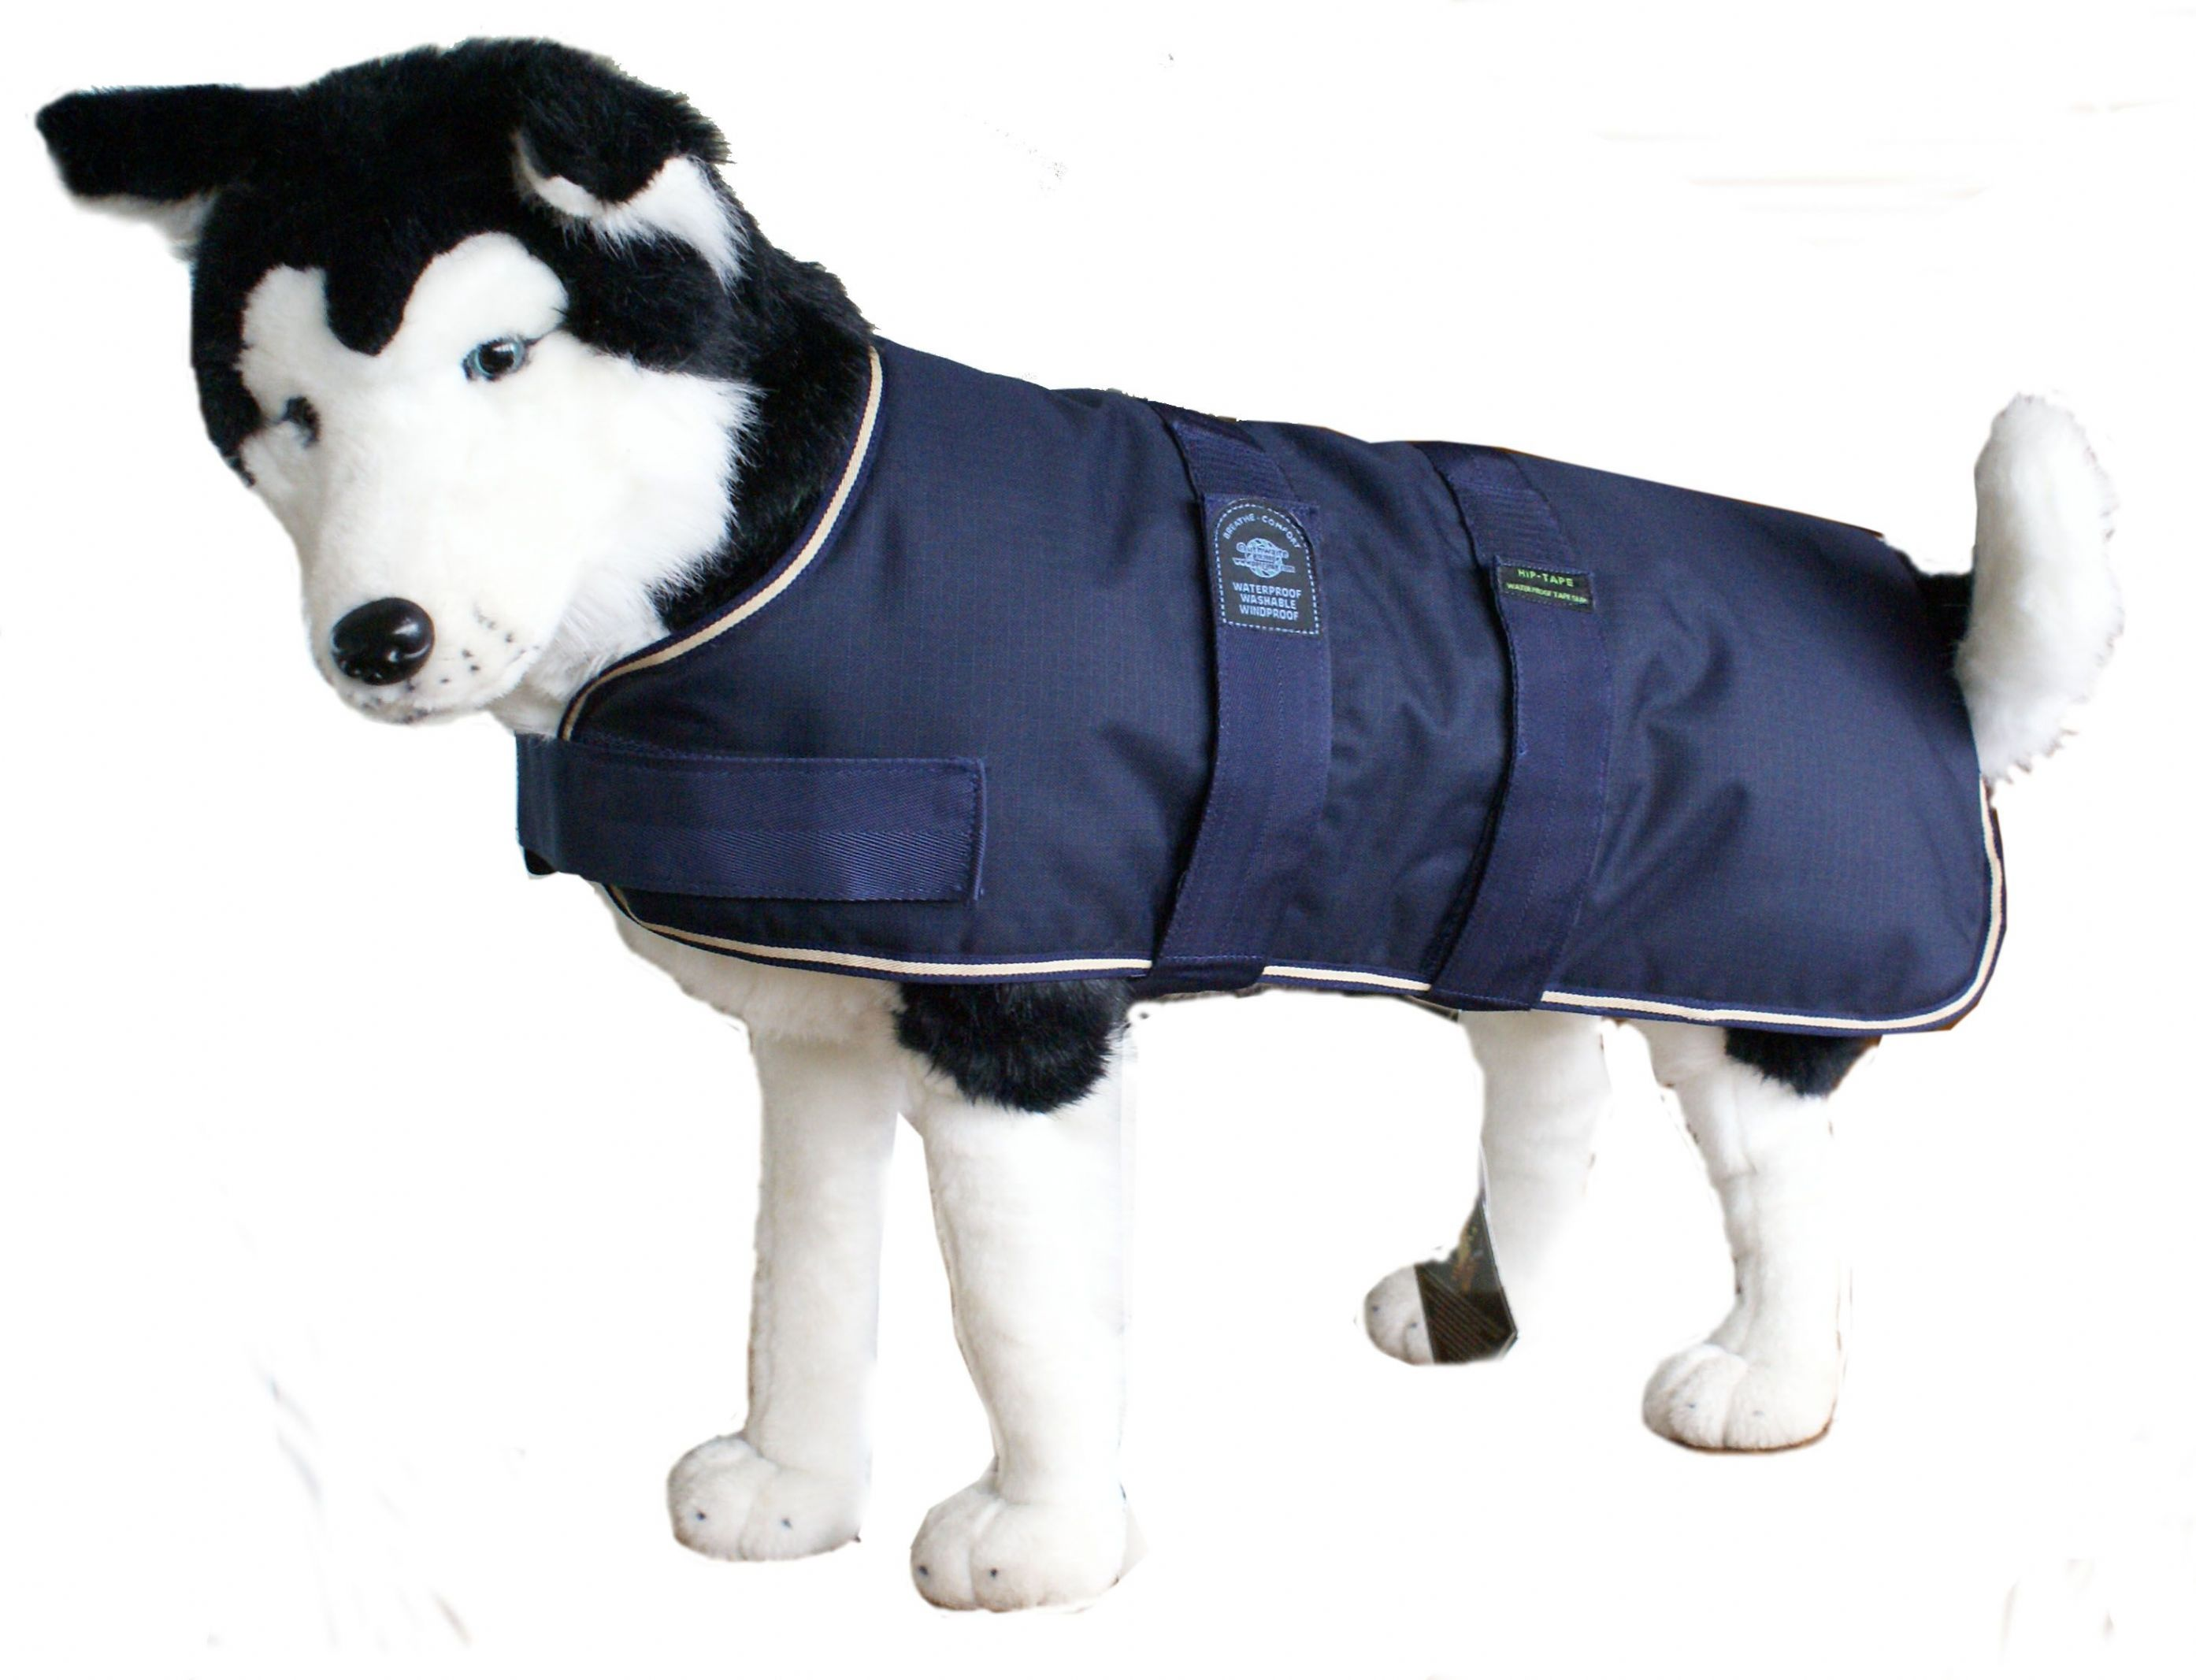 Warmest Dog Coat photo - 1